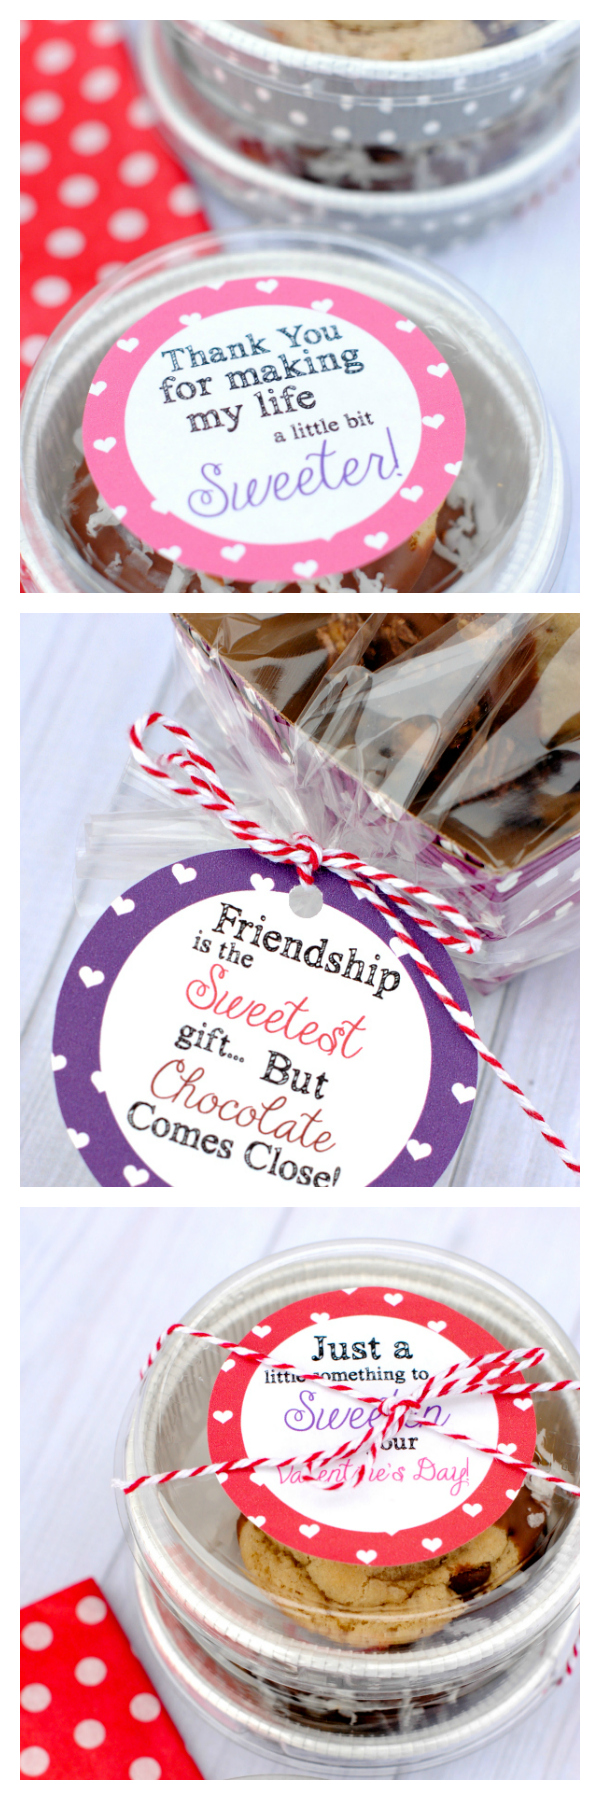 Cute Gift Tags to package Valentine's Treats for friends-Just print these cute tags and add them to any treat for a fun and sweet Valentine's gift for anyone! #valentinesday